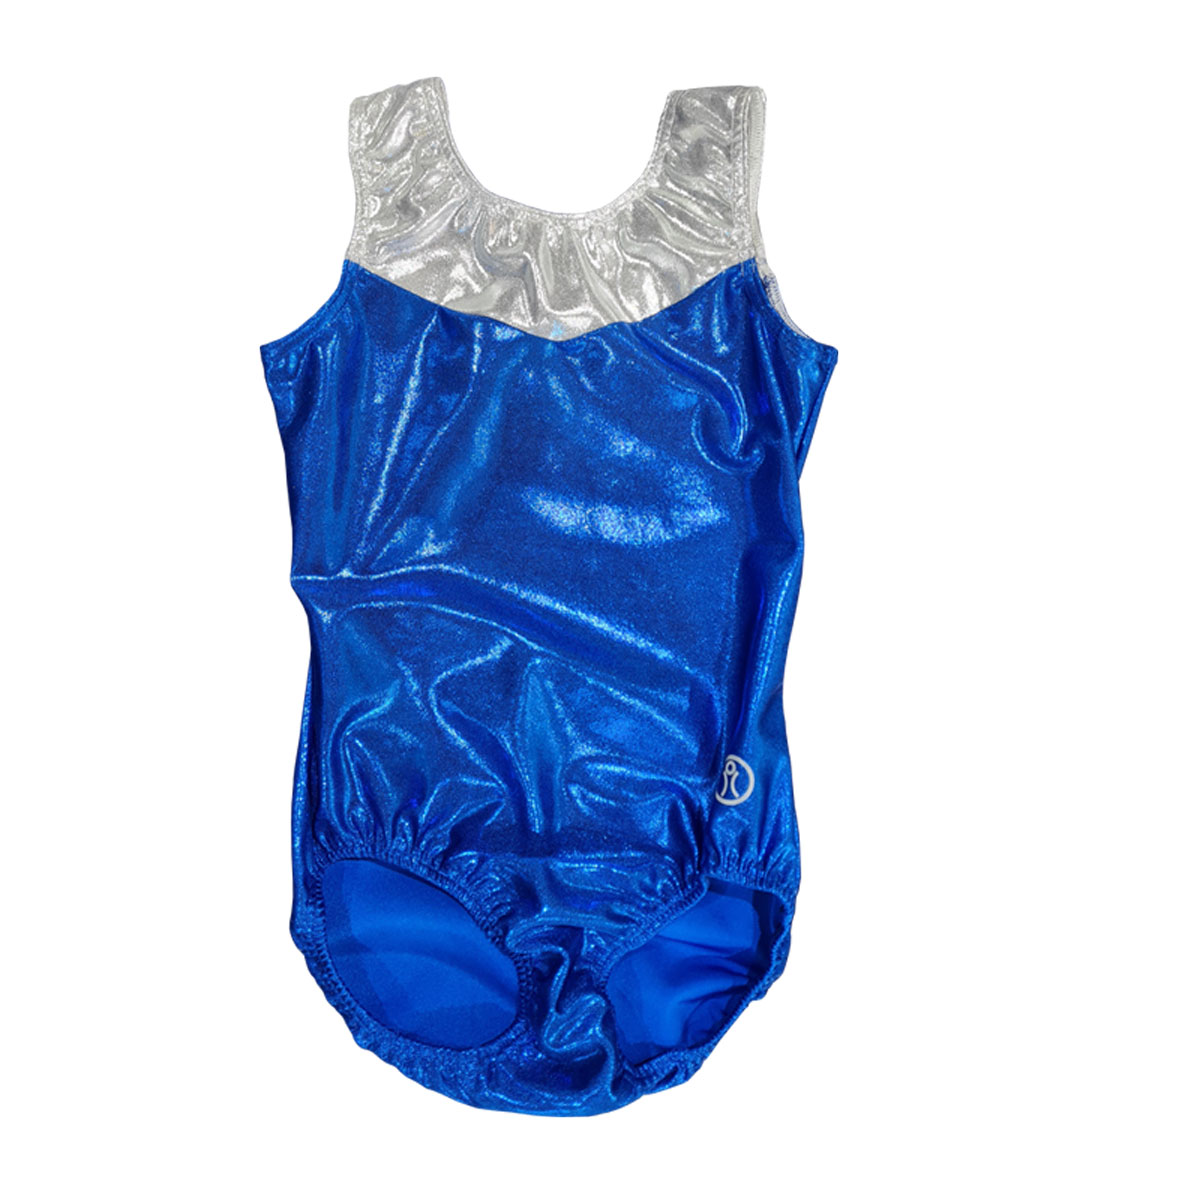 Short Sleeve Leotard Size 12 – Pacific Royal & White Silver